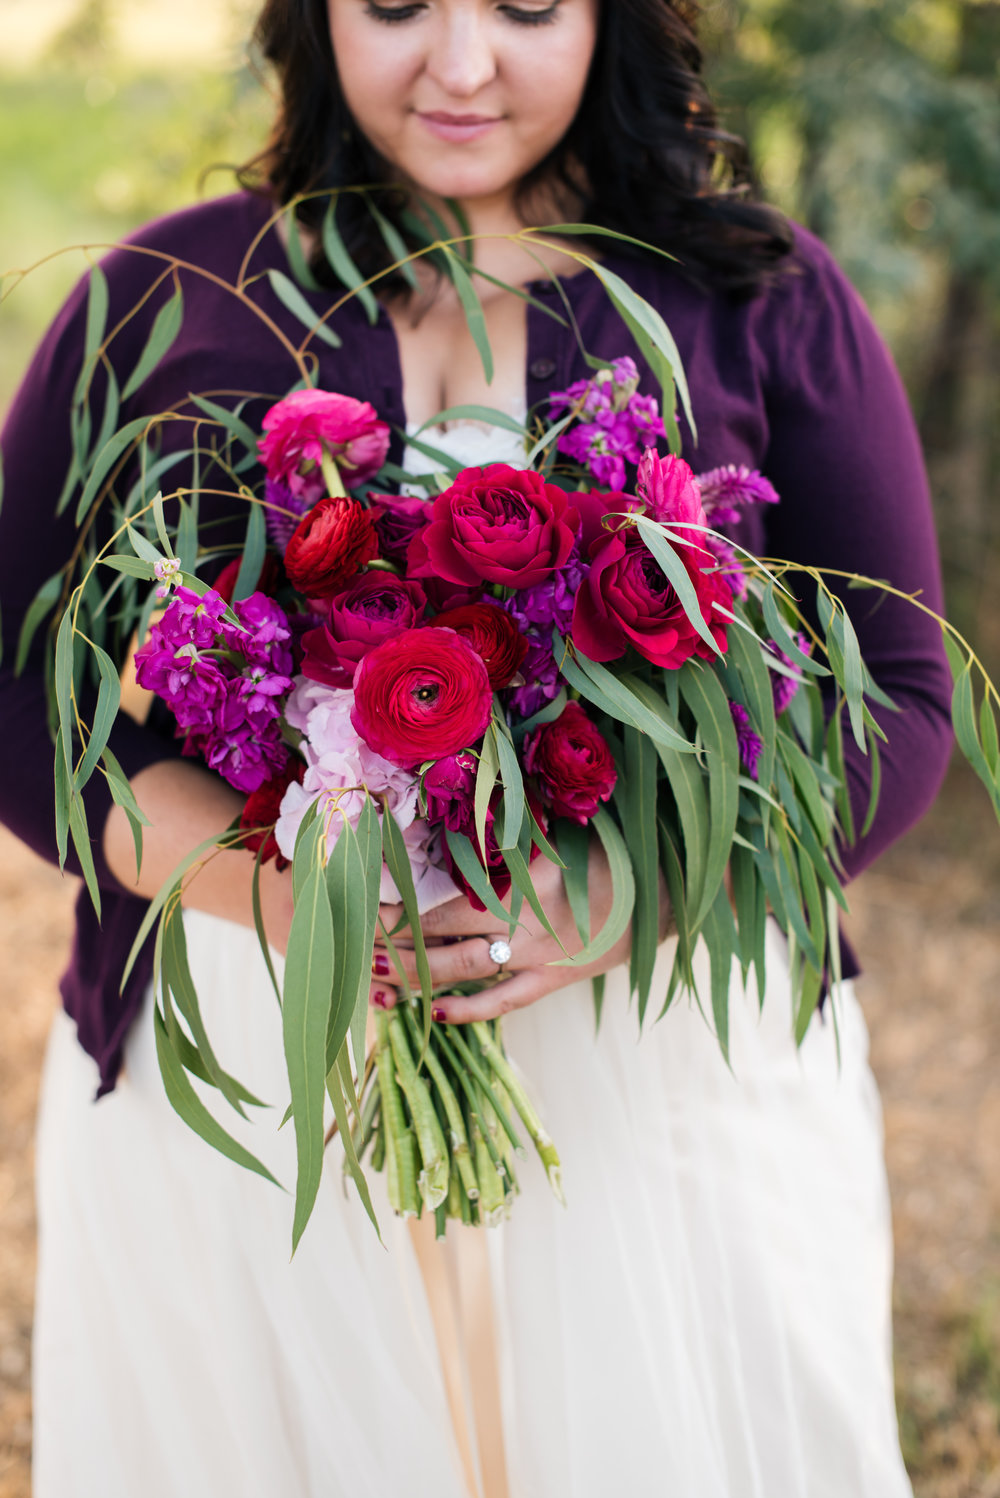 Flowers by Lace and Lilies, Vibrant Pink Summer Bouquet, Ranunculus, Garden Rose, Eucalyptus